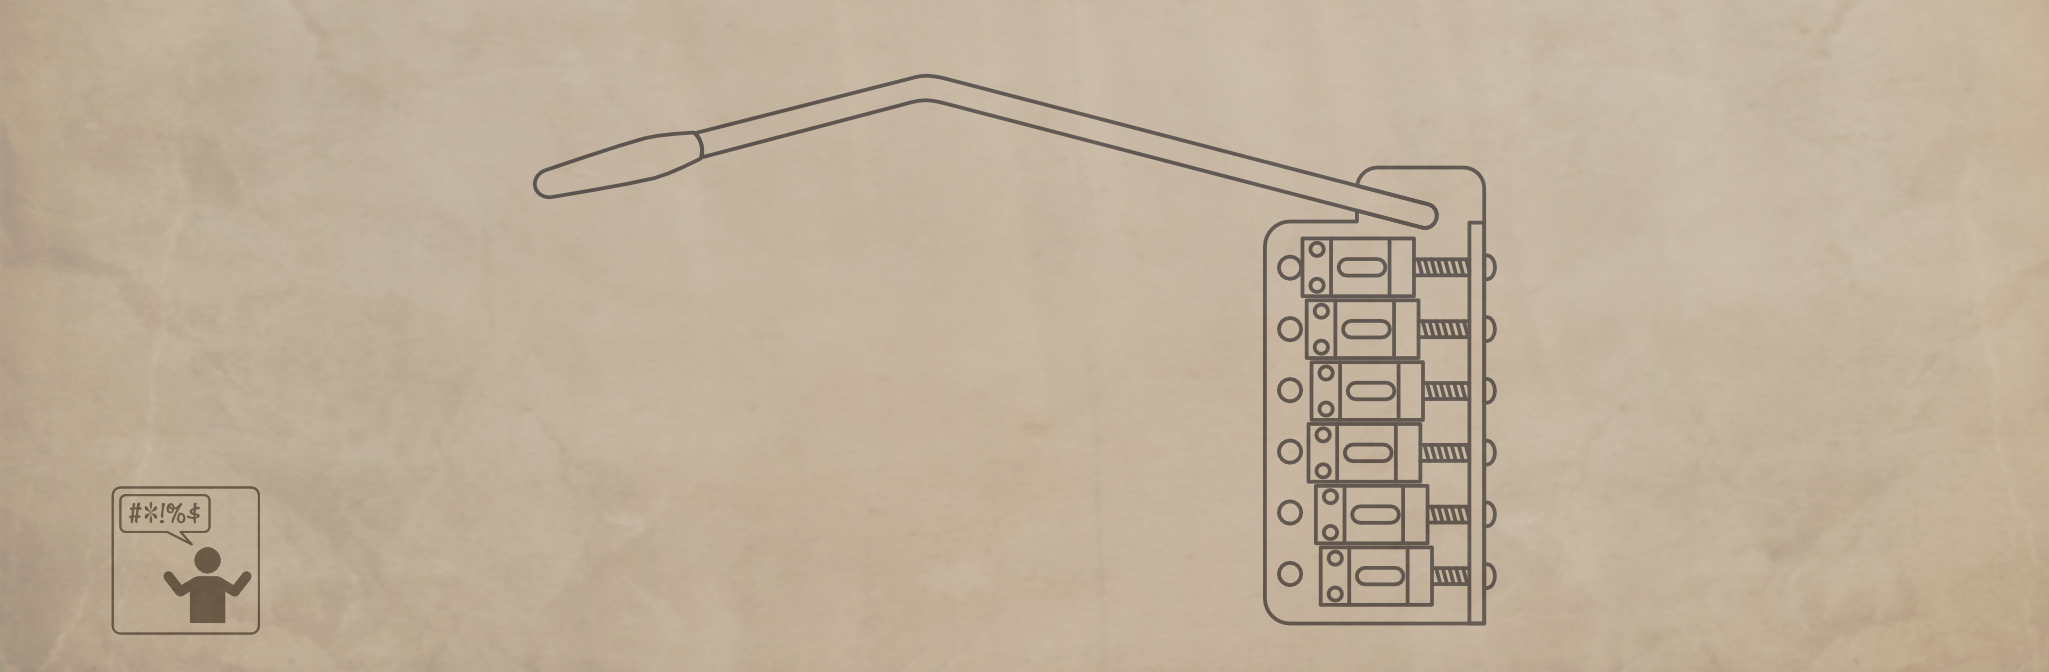 Whos To Blame For Tremolo Haze Guitars Of Electric Guitar Get Free Image About Wiring Diagram